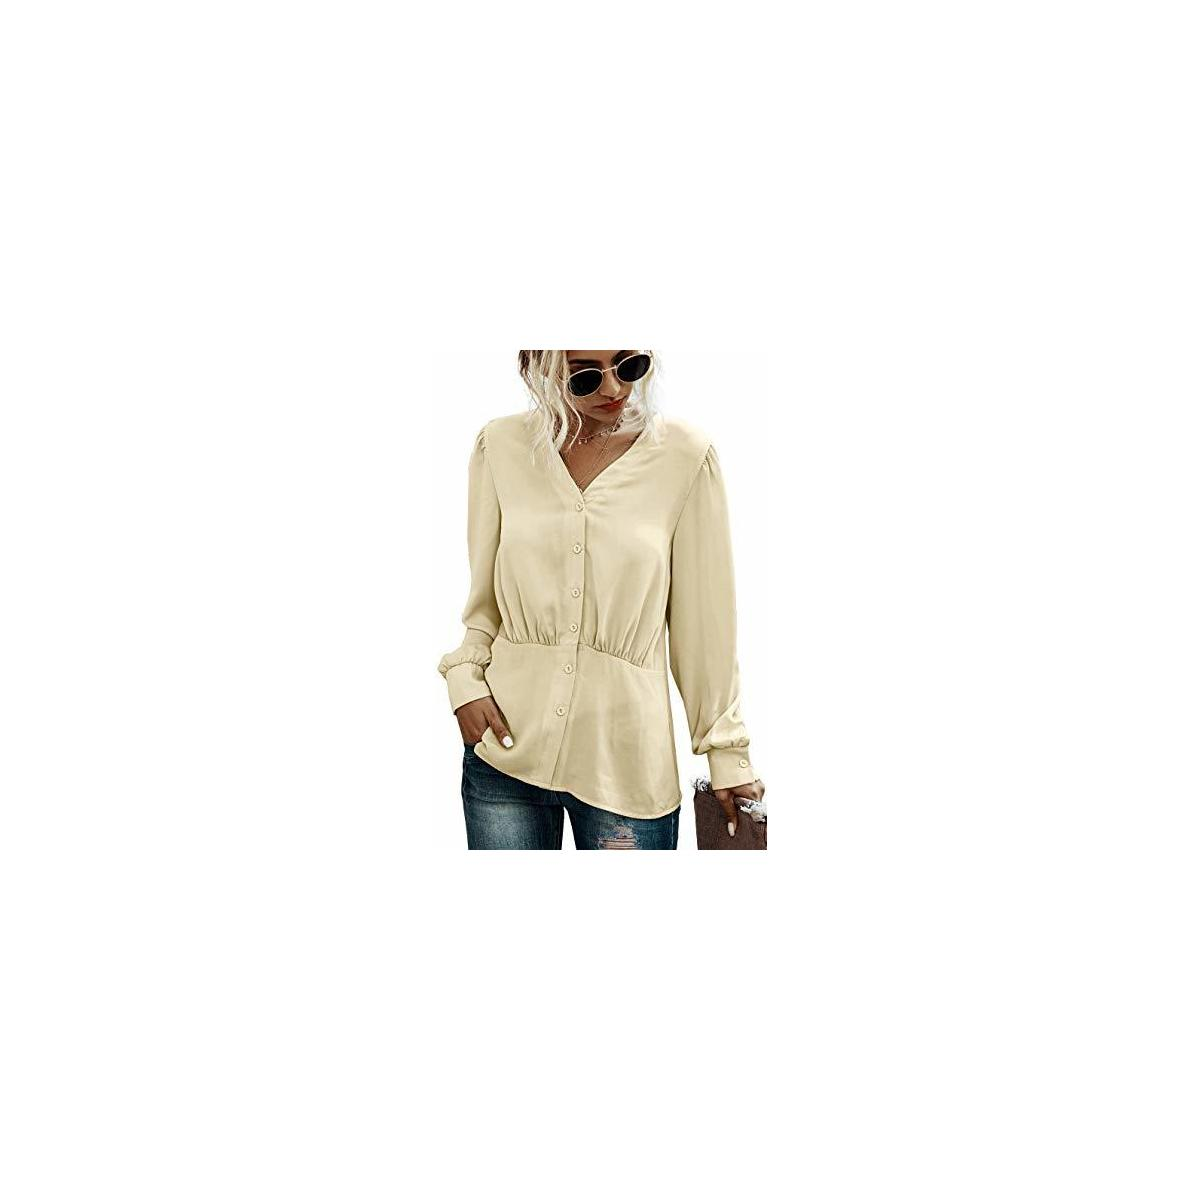 Women's Solid Color Elegant Tops Trumpet Long Sleeve Blouse Loose Tunic V Neck Pleat Shirt